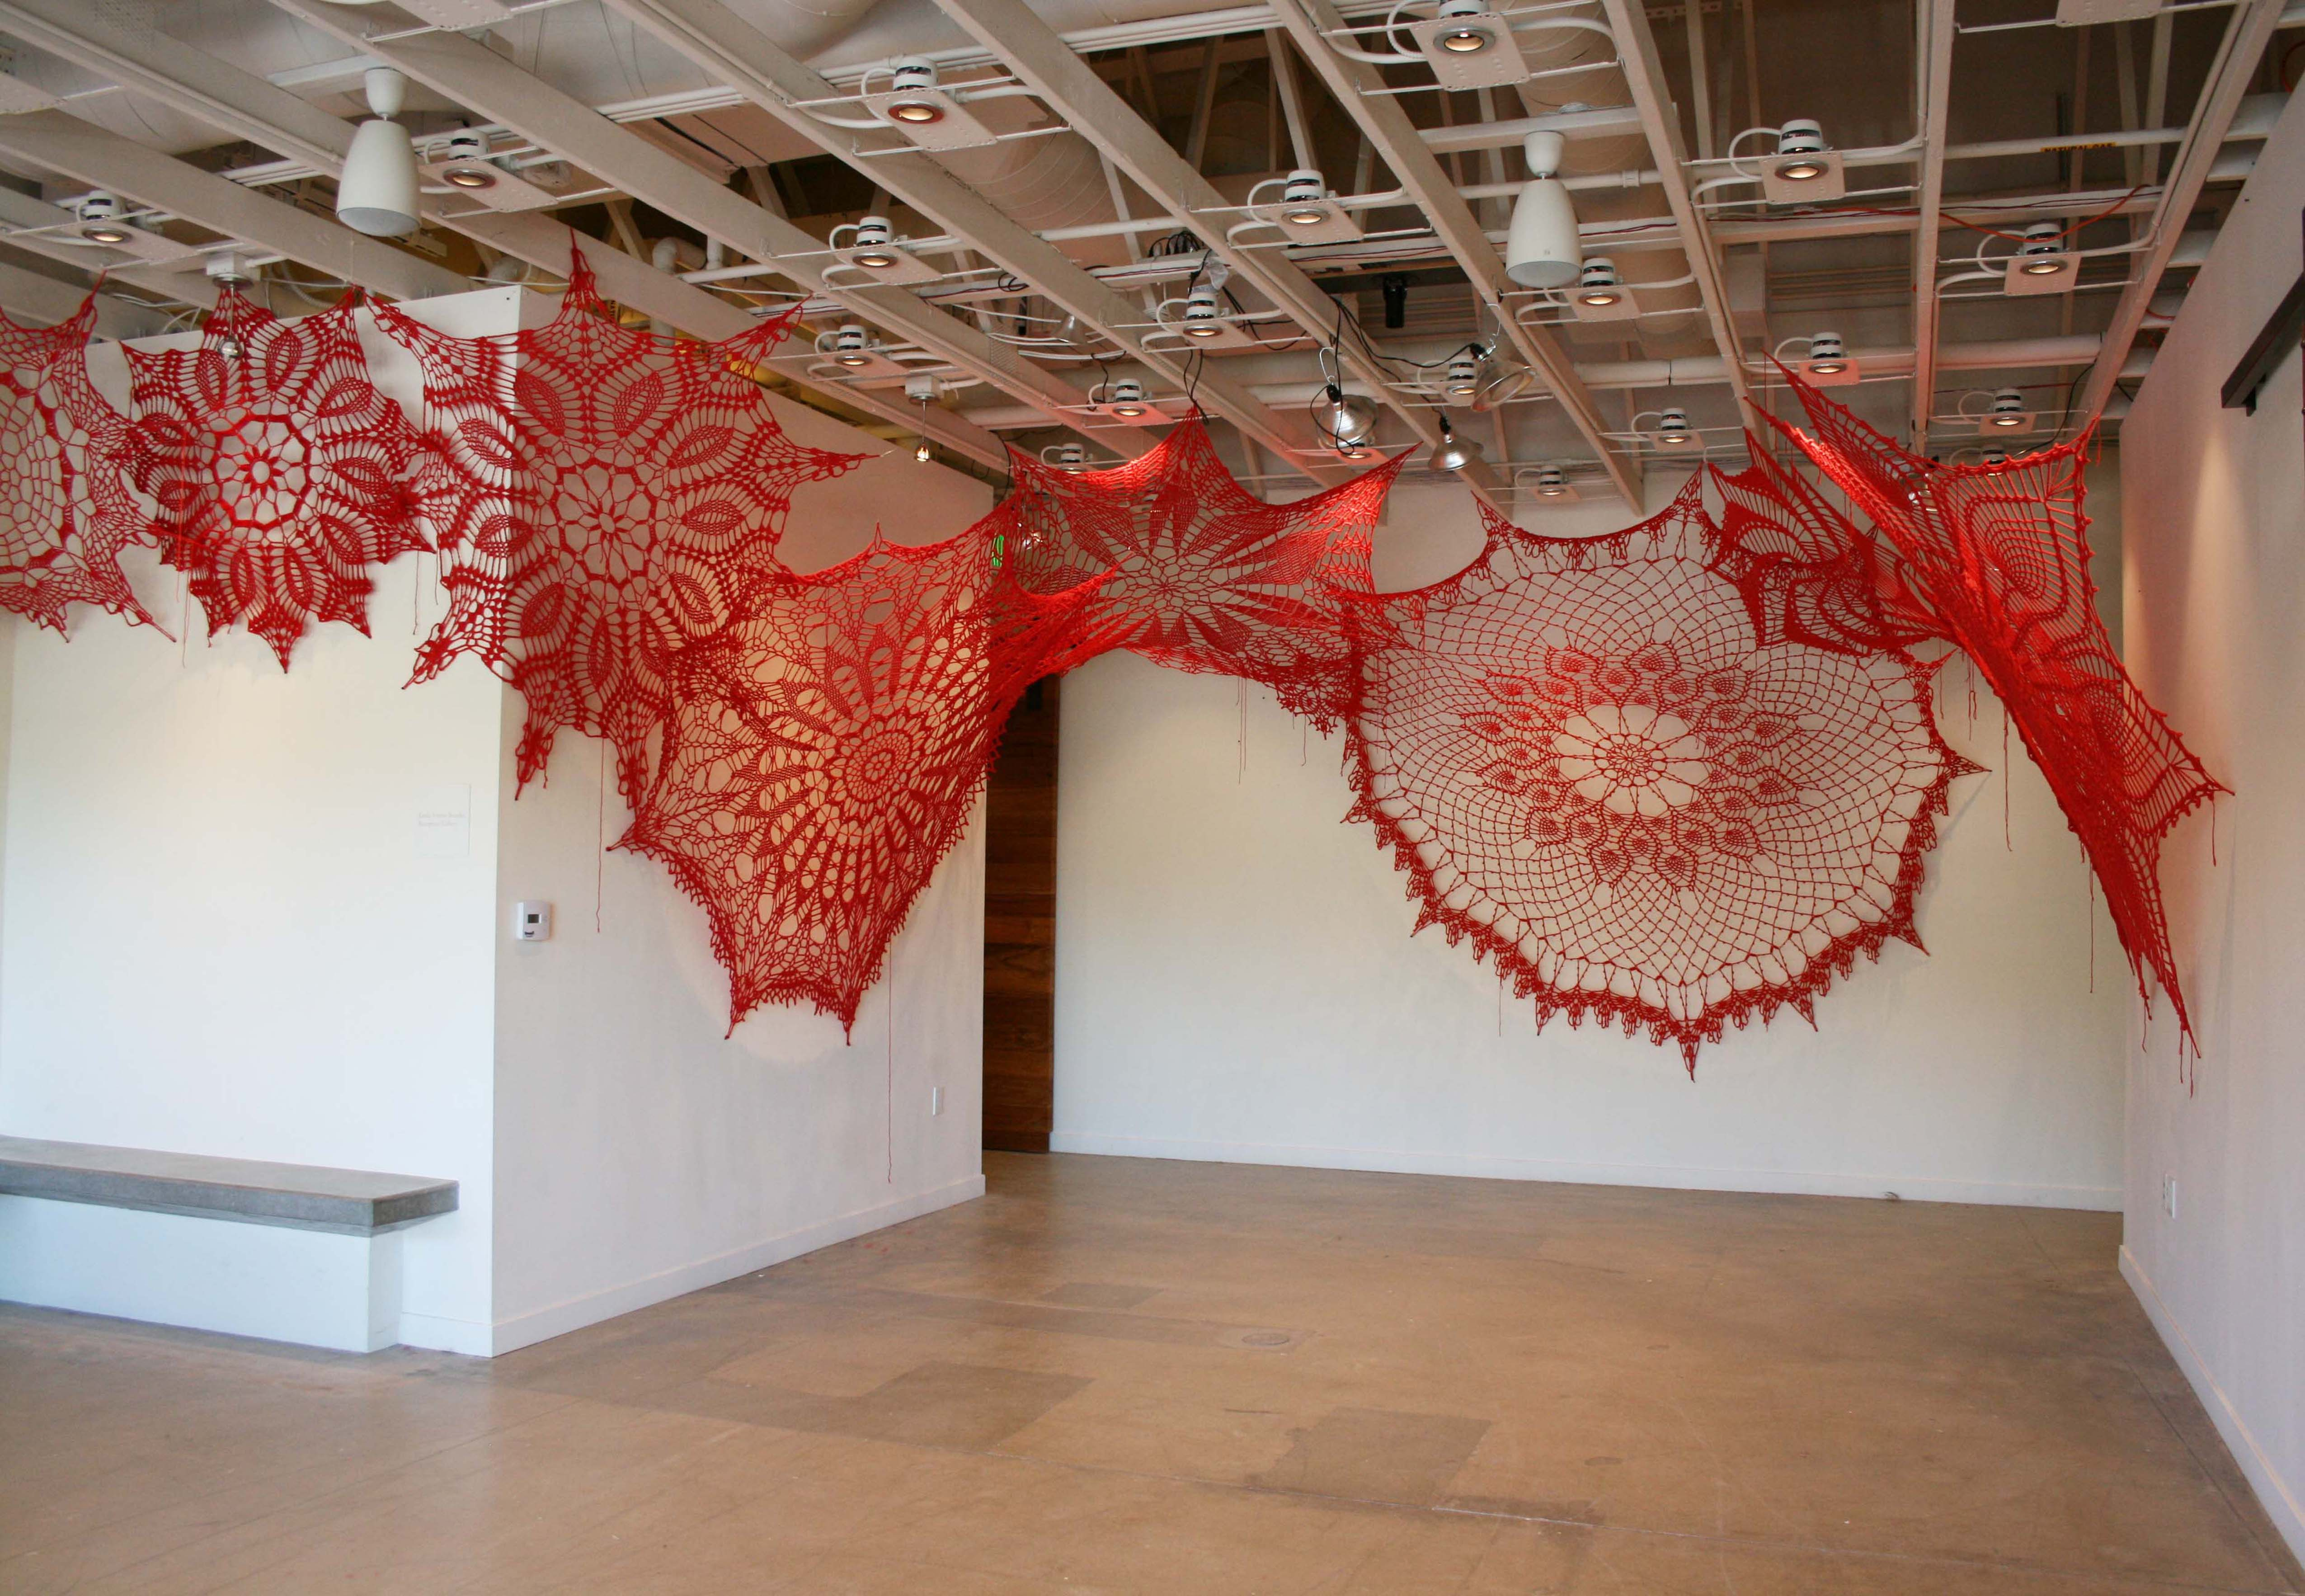 Detail of Ashley Blalock's installation at Lux Art Institute in Encintas, CA in 2018. Courtesy of the artist.